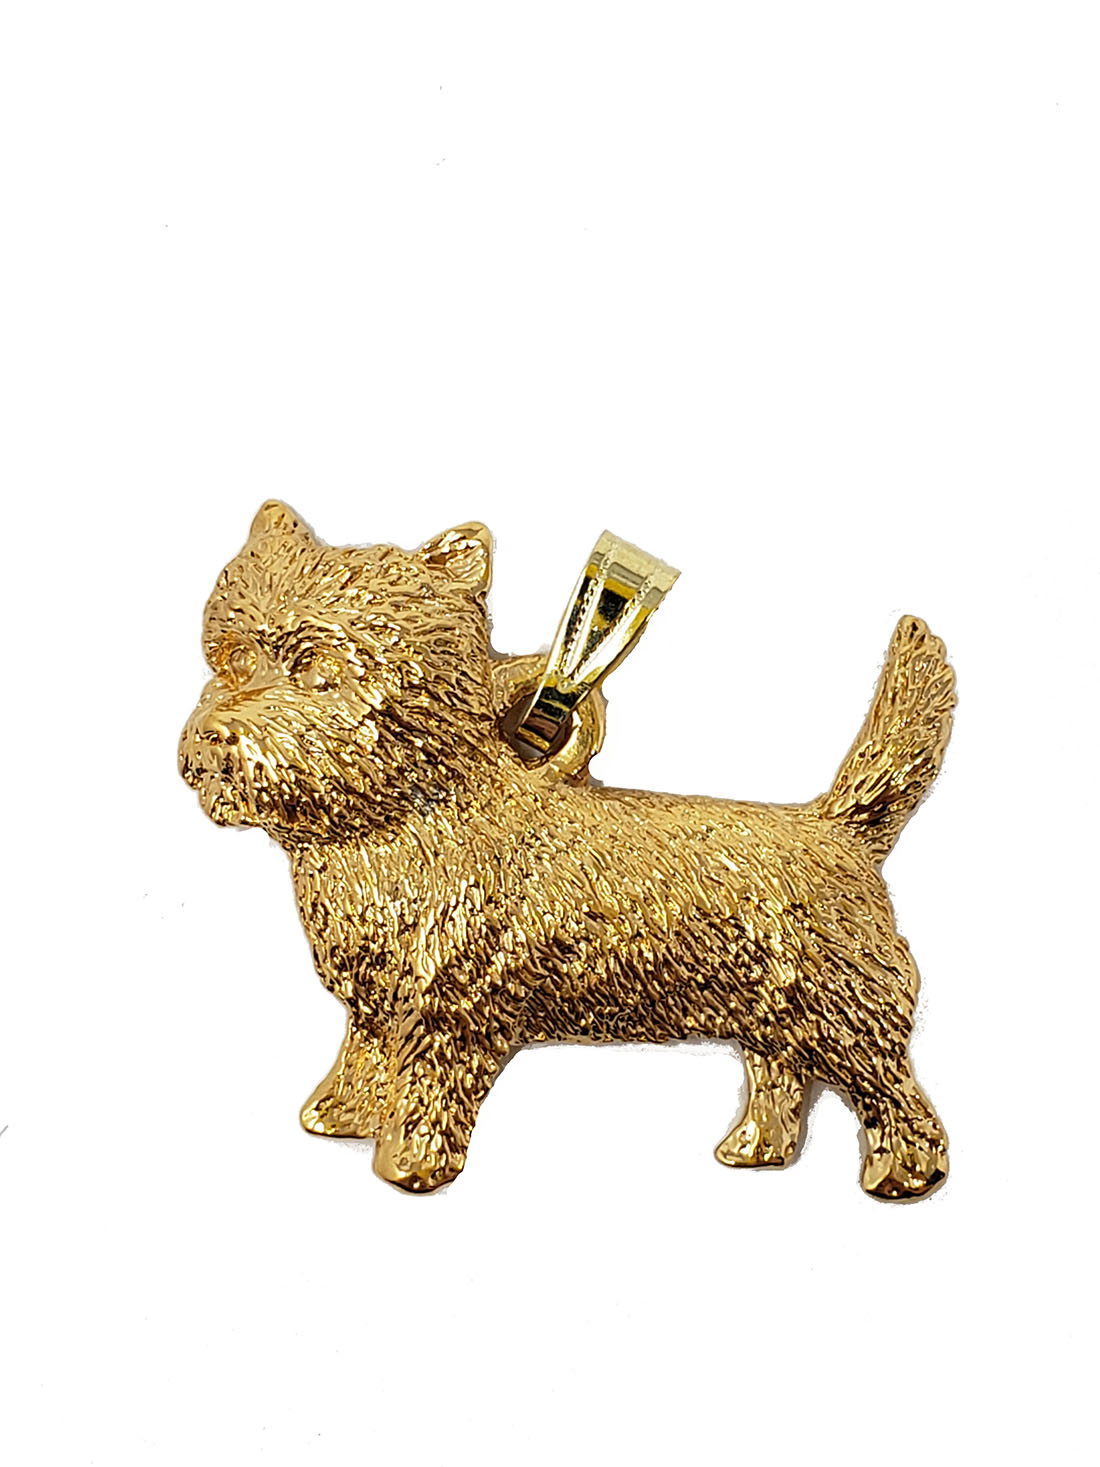 Cairn Terrier 24K Gold Plated Pendant